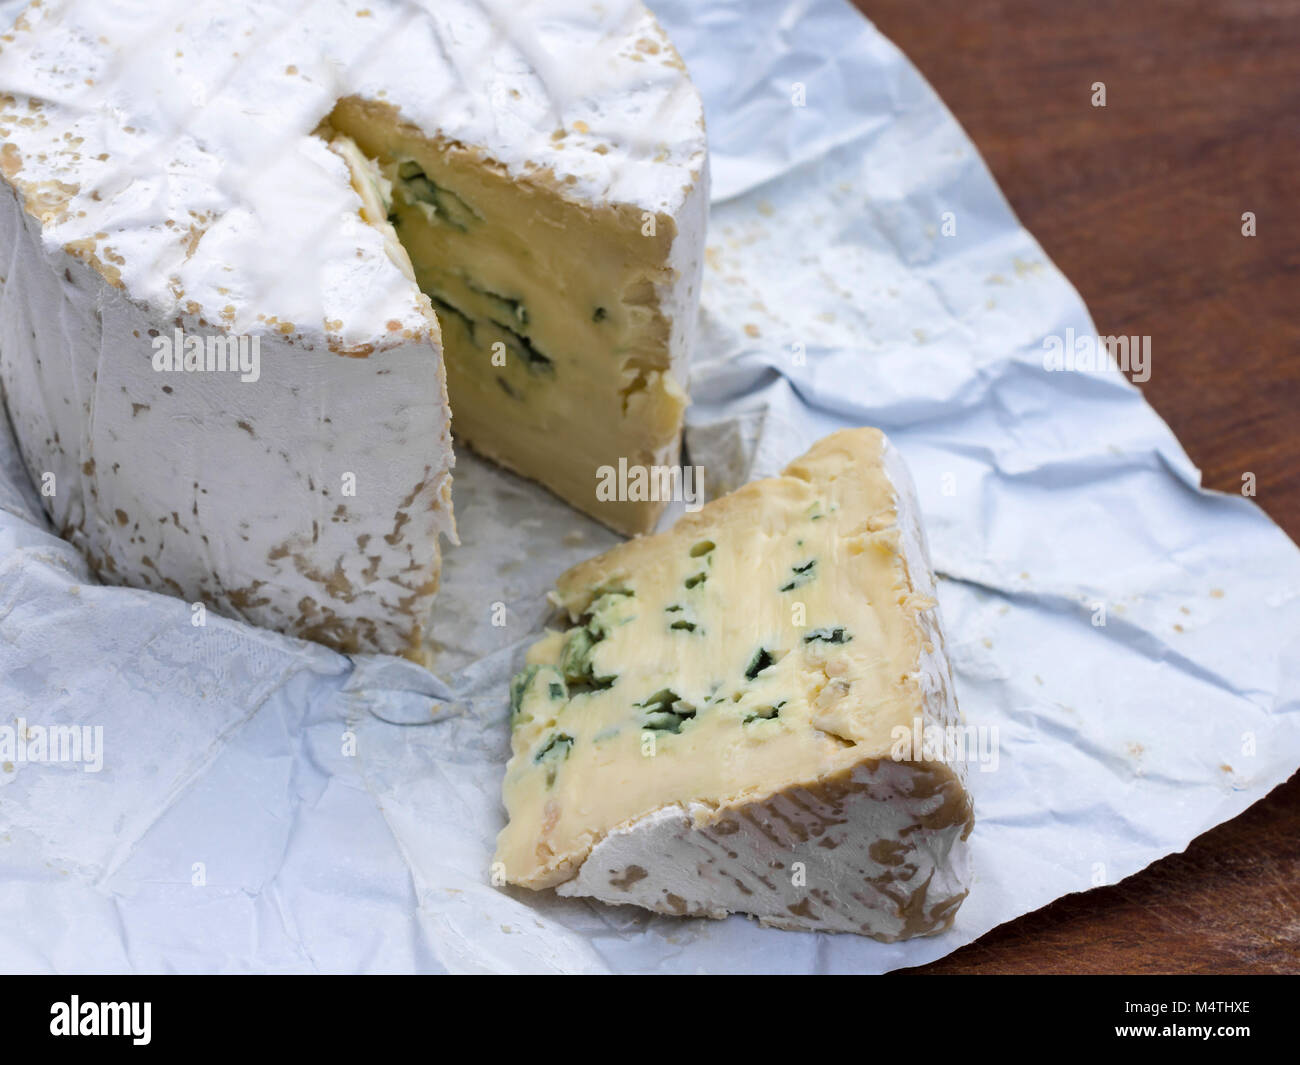 Commercial round Blue cheese, French - Stock Image